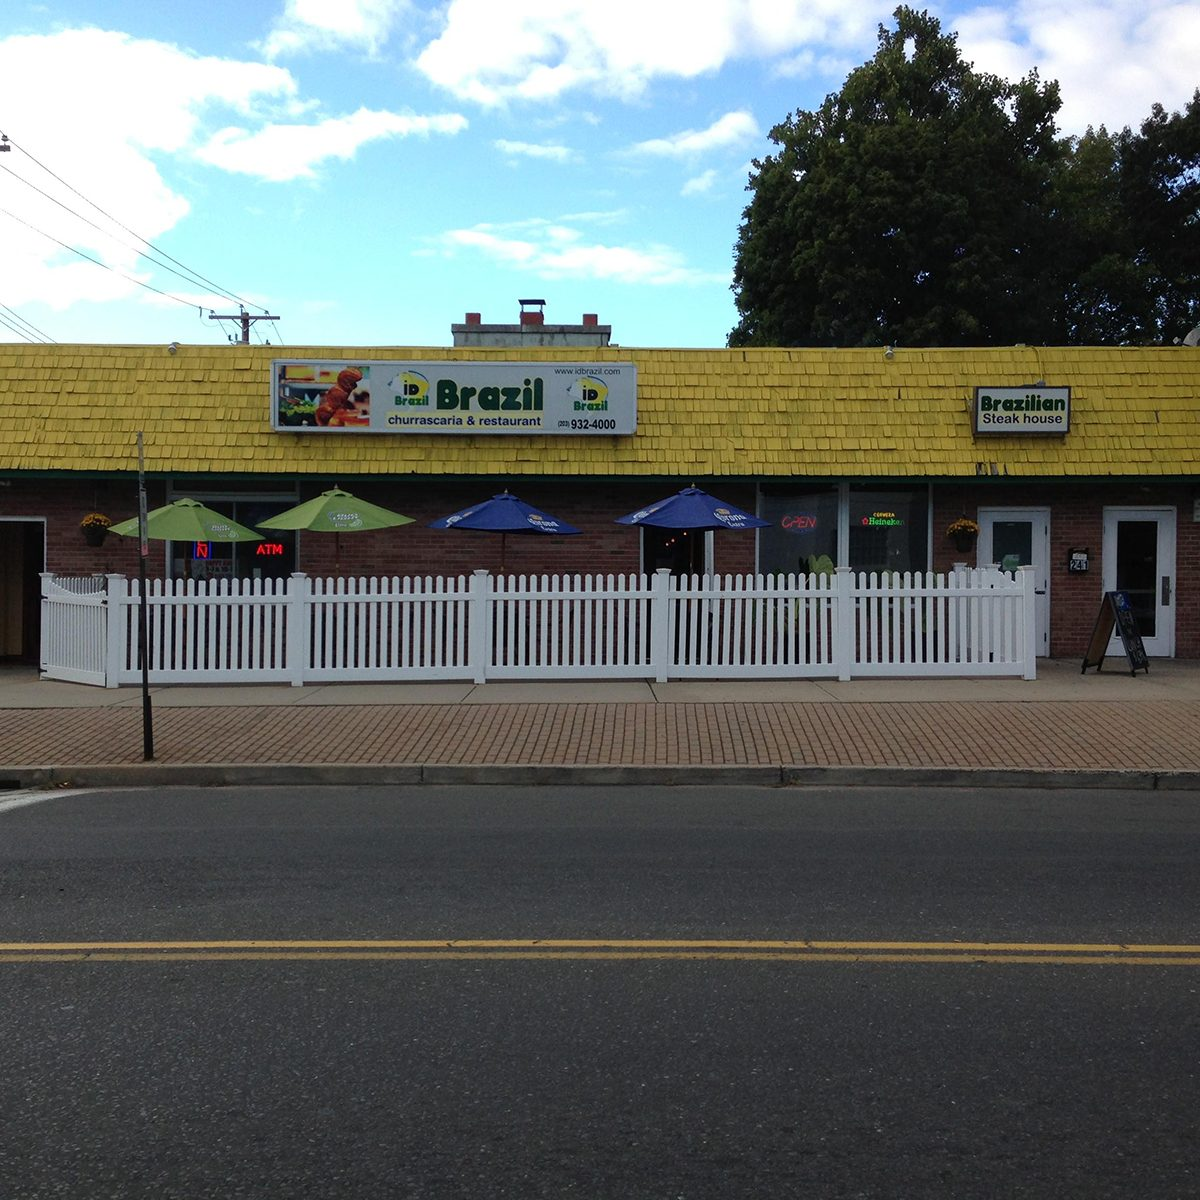 Connecticut: iD Brazil Churrascaria, West Haven